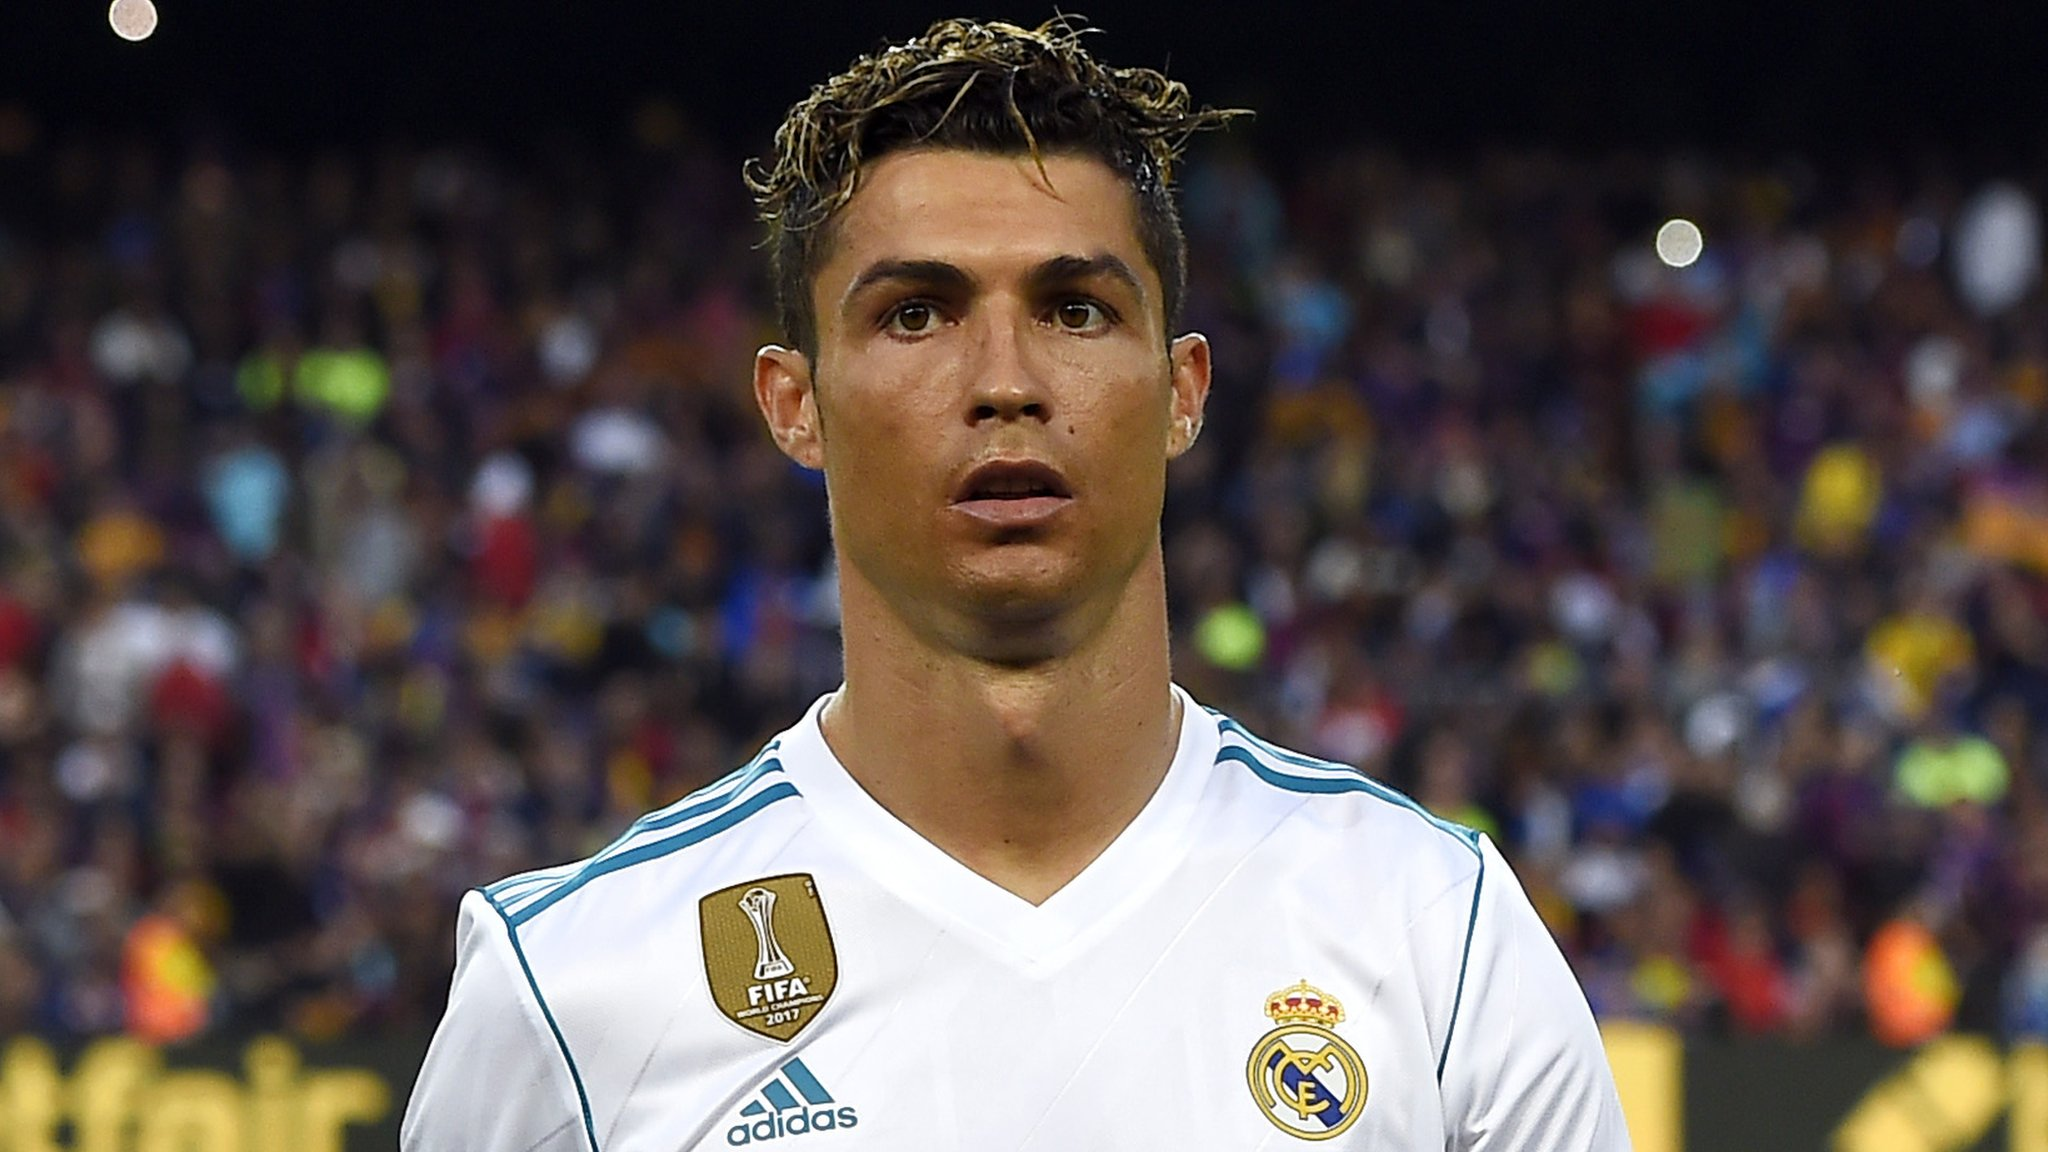 Champions League: Cristiano Ronaldo '120% fit' for Real Madrid v Liverpool